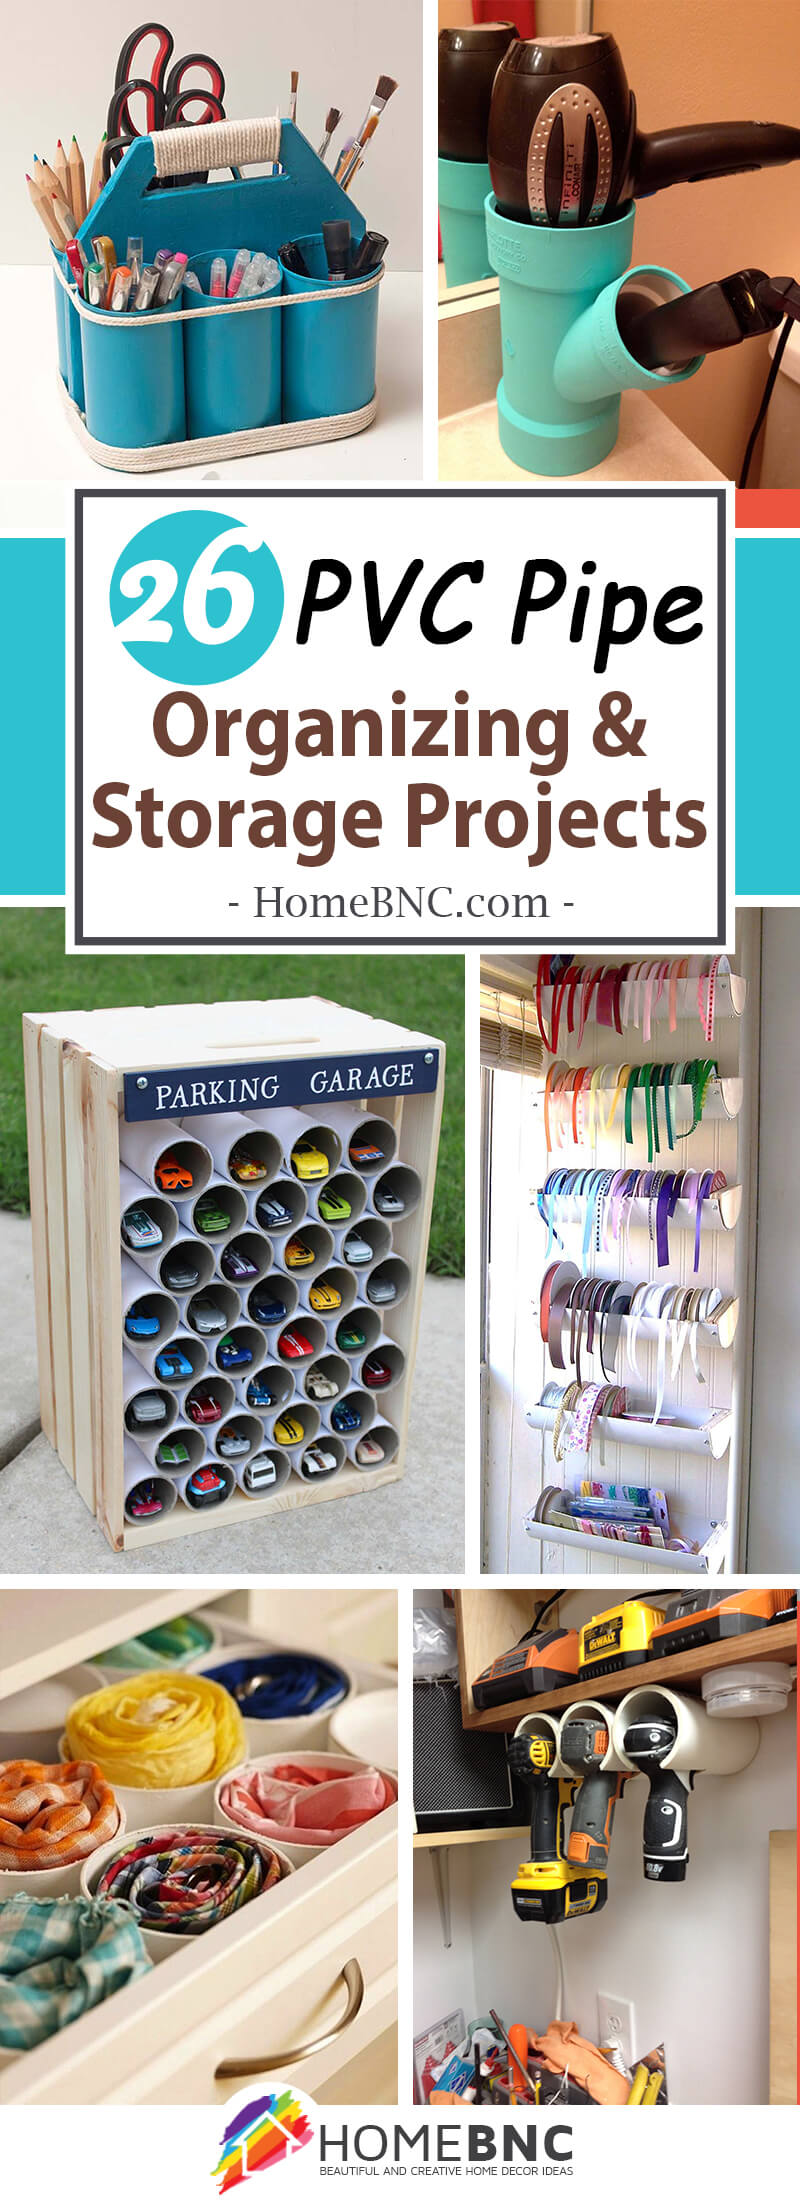 26 Great Bathroom Storage Ideas   26 Best Pvc Pipe Organizing And Storage  Projects Ideas And